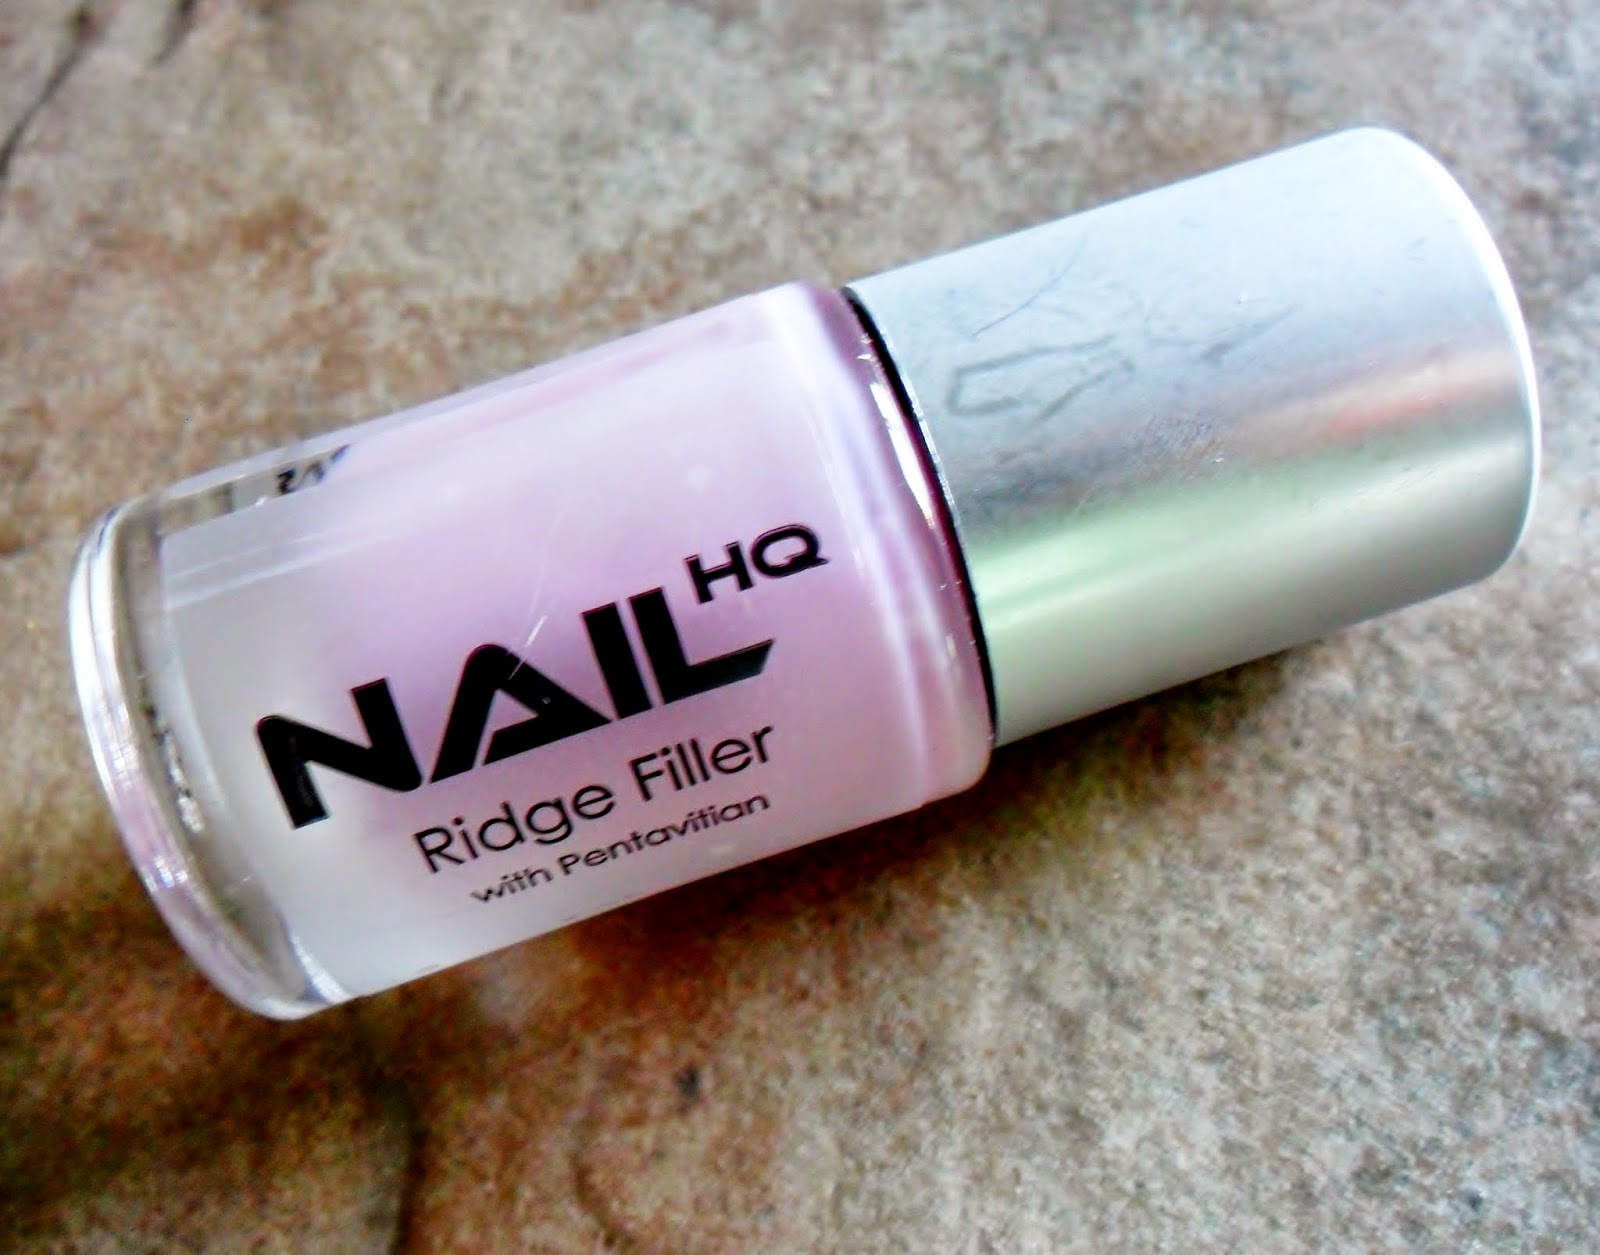 NailHQ Ridge Filler